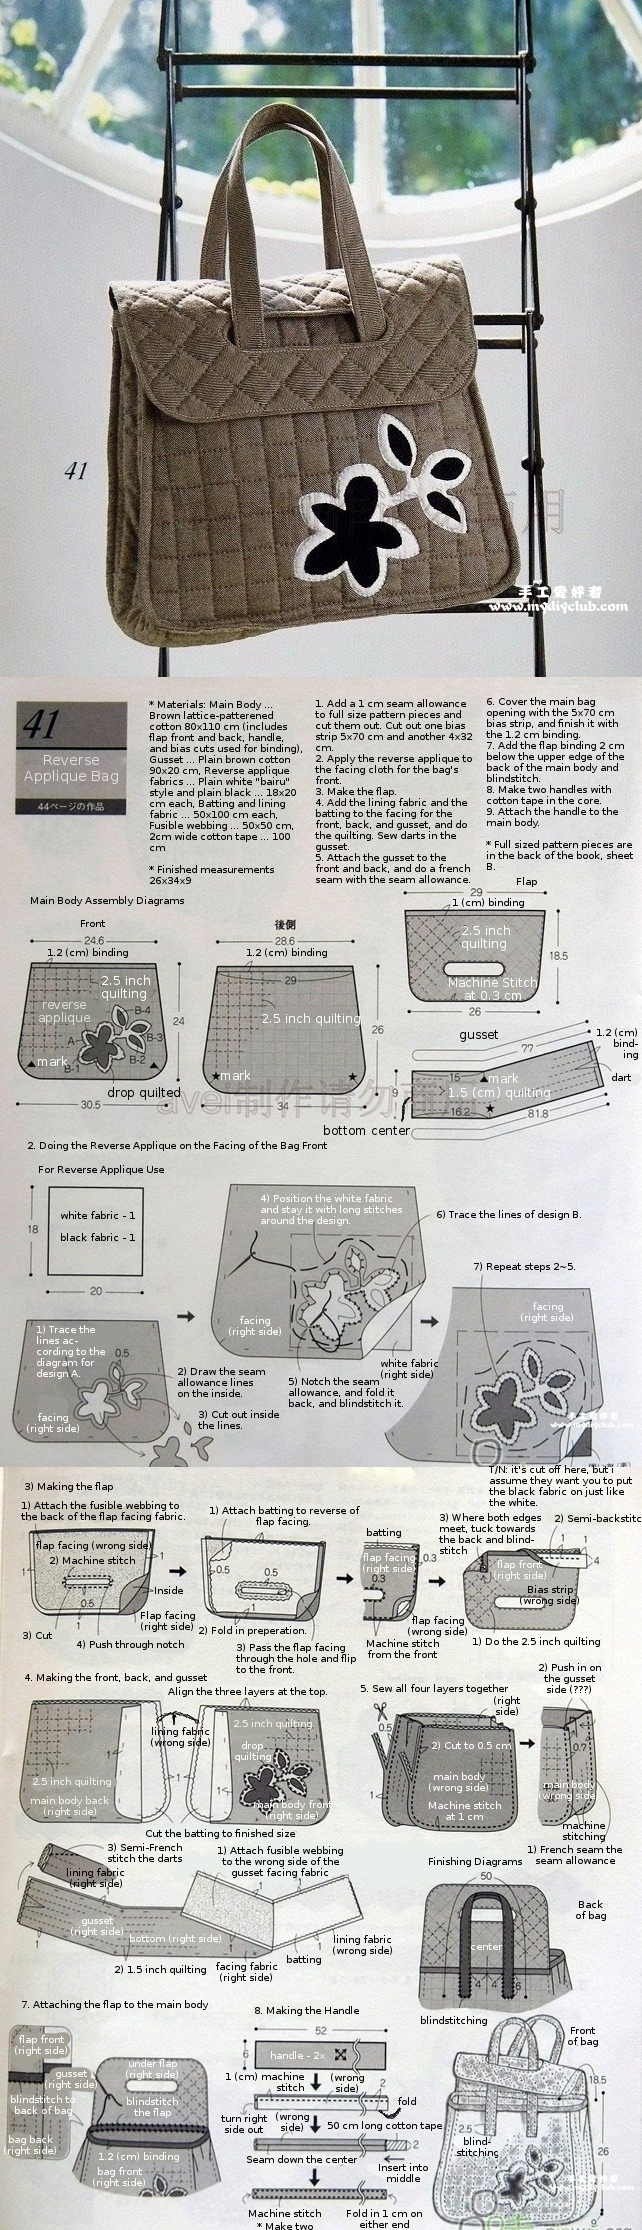 instructions for making a reverse-appliqued handbag